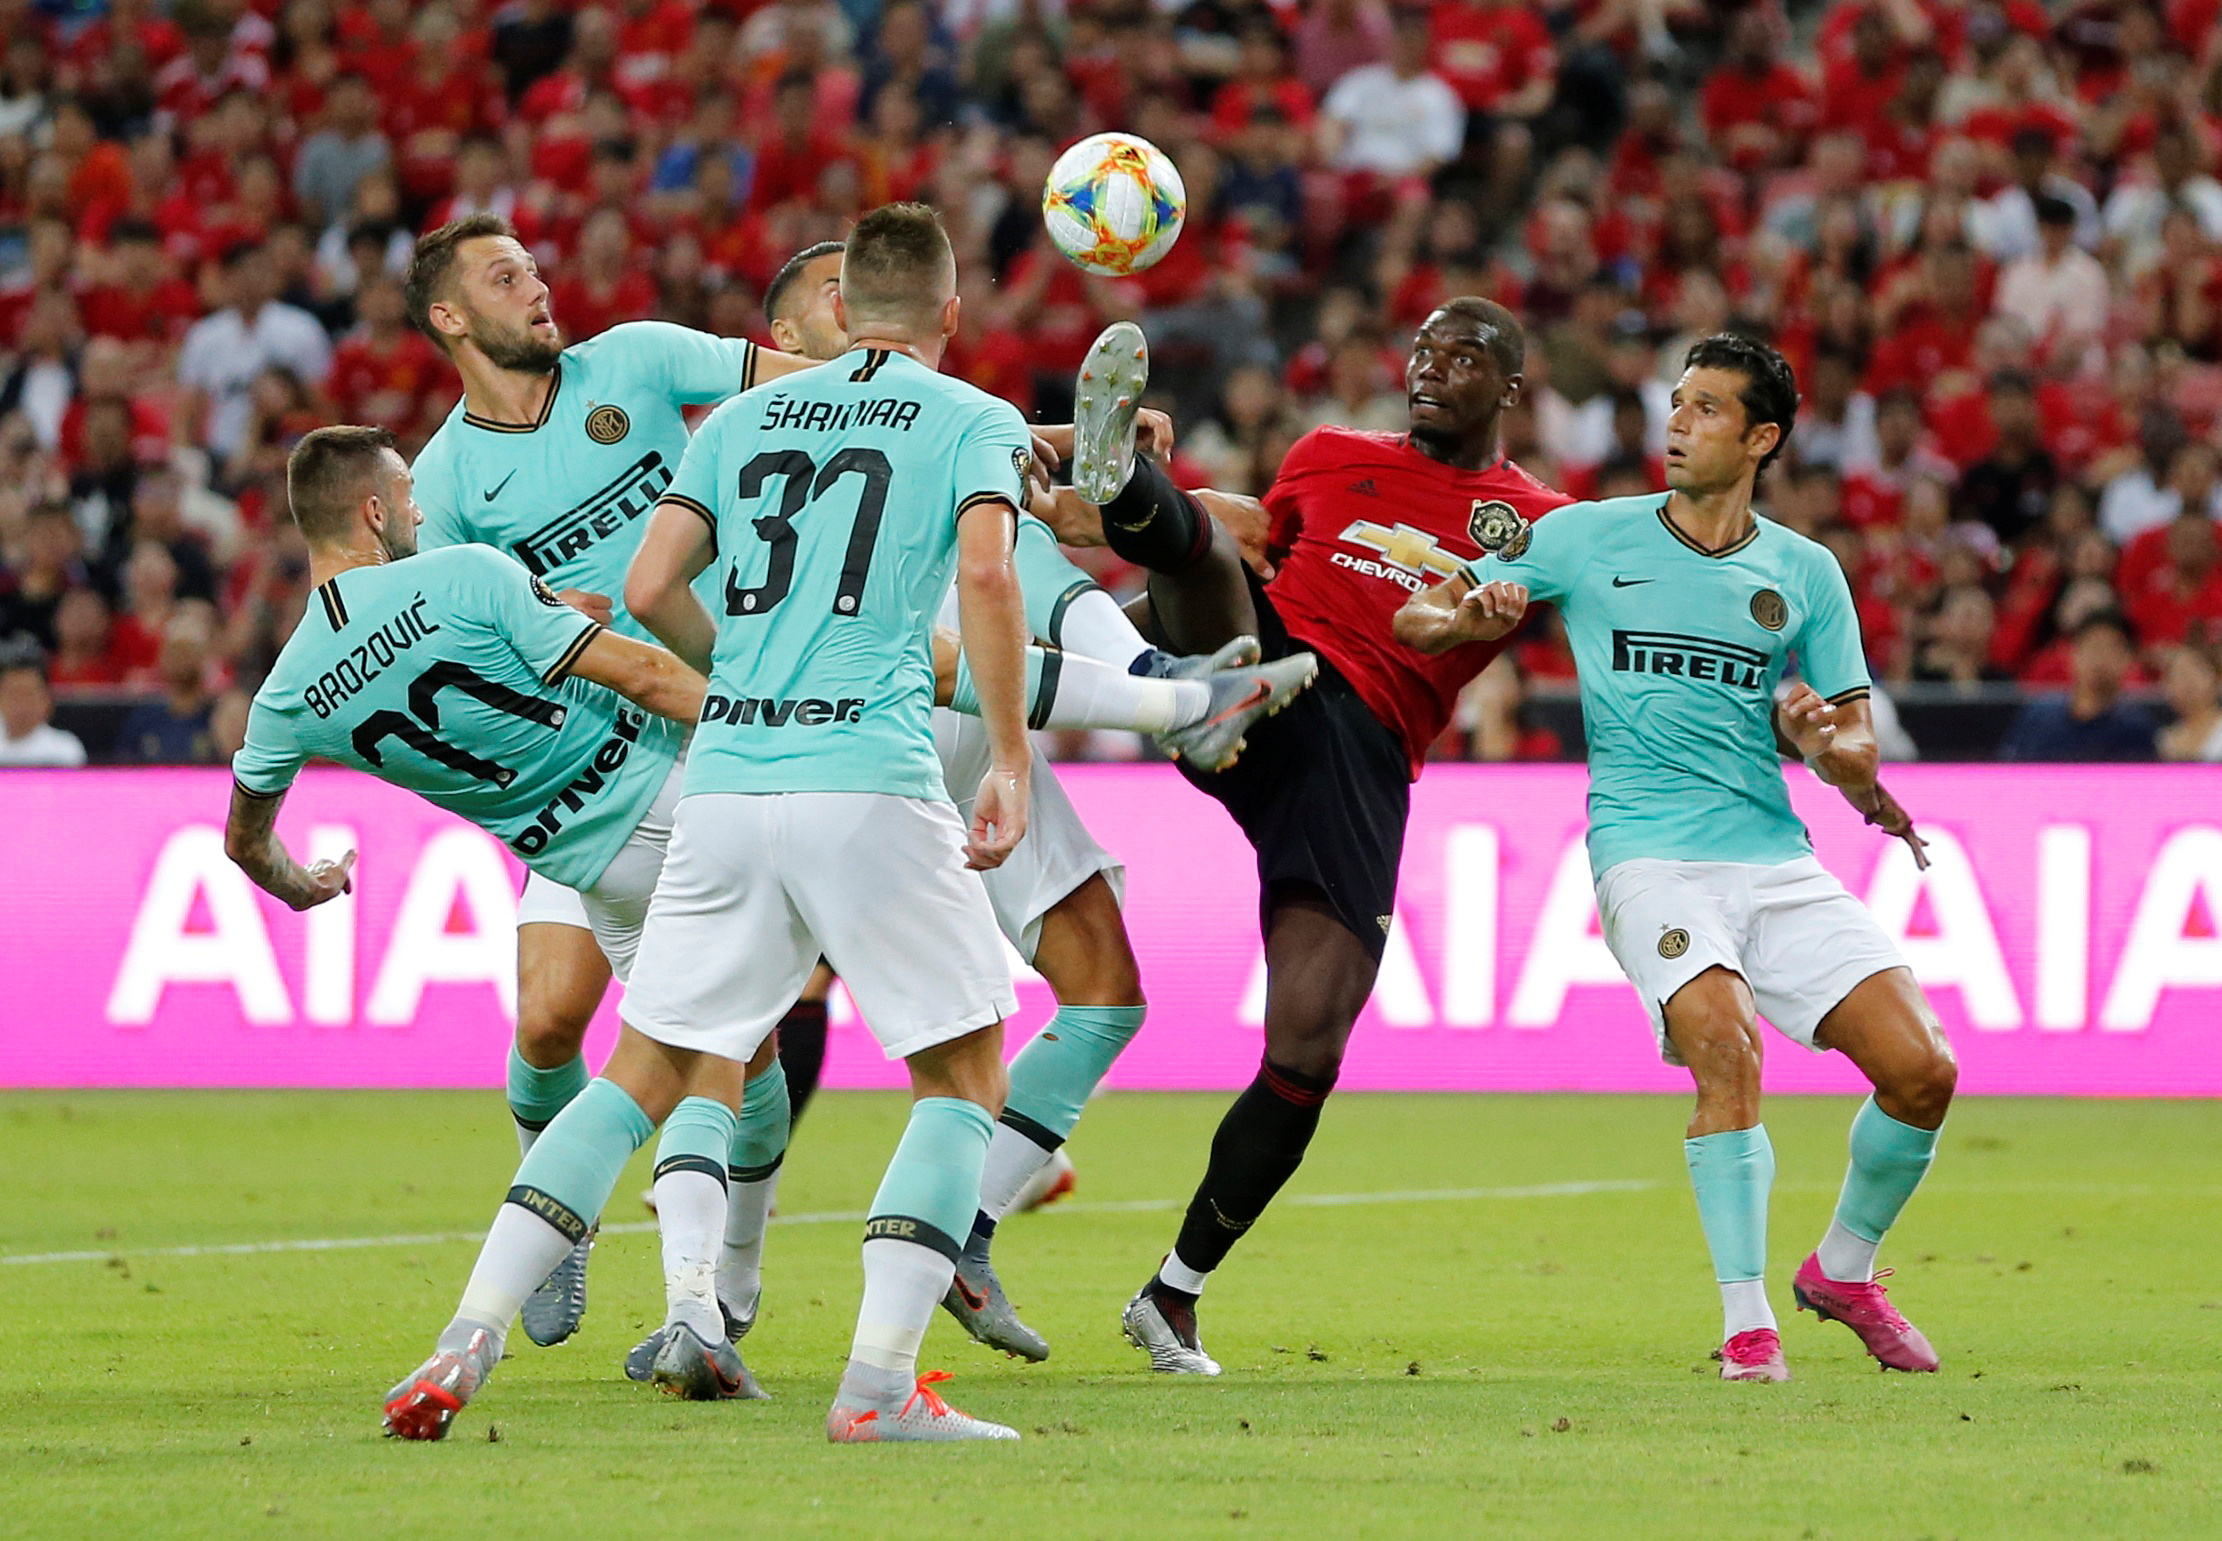 Manchester United's Paul Pogba in action with Inter Milan's Antonio Candreva and team mates during the International Champions Cup at the National Stadium in Singapore, July 20 2019. REUTERS/Feline Lim